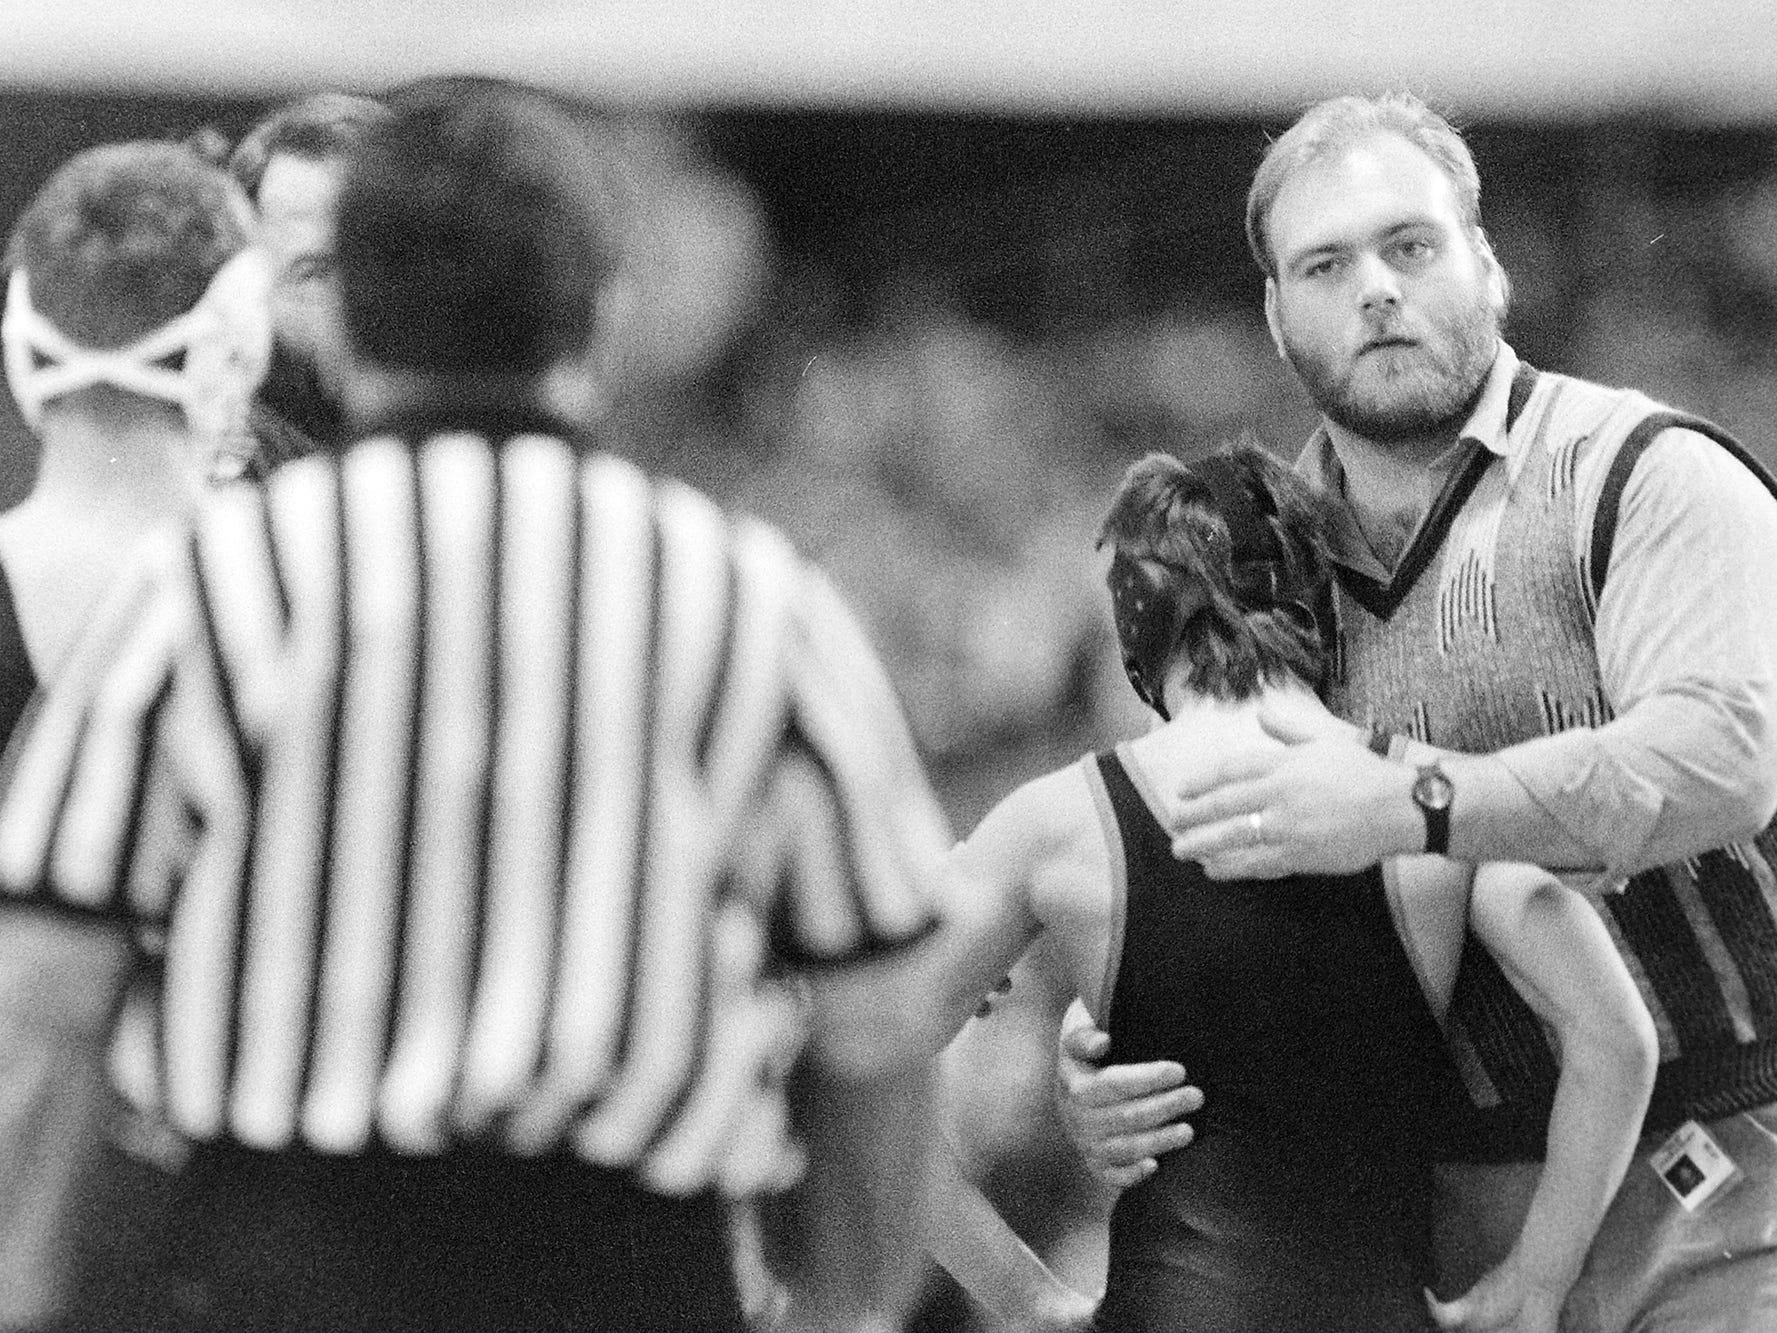 02/16/91